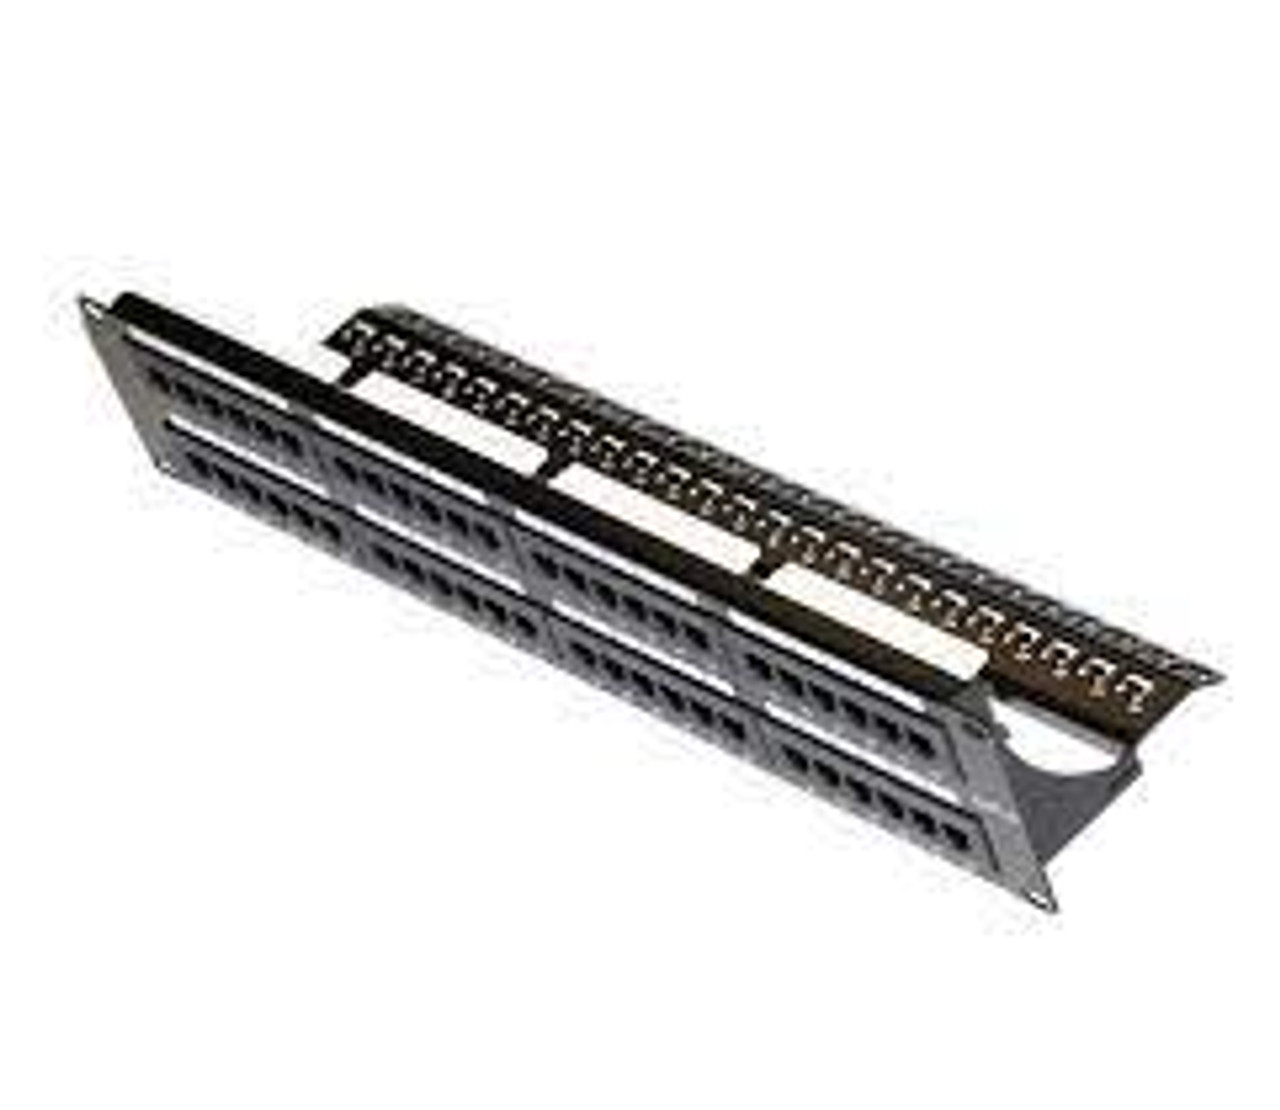 48 Port CAT6 Patch Panel with cable Management